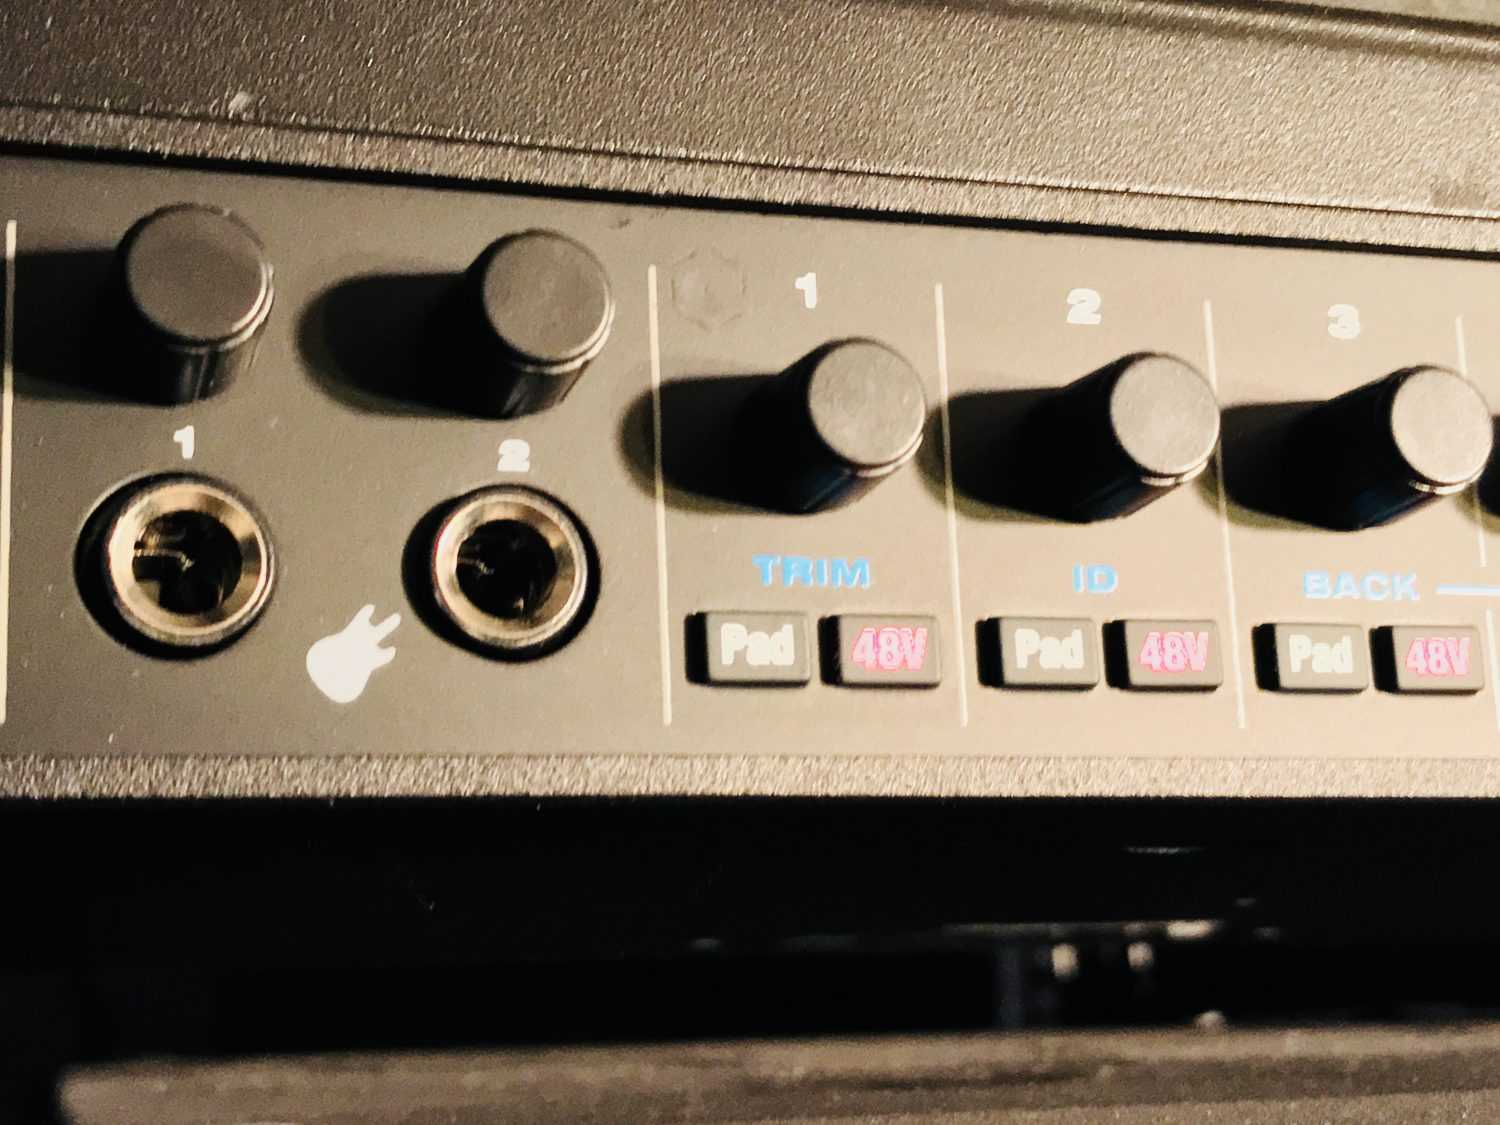 Does YOUR Audio Interface Double As a Recorder with Timecode? MOTU 1248 Can